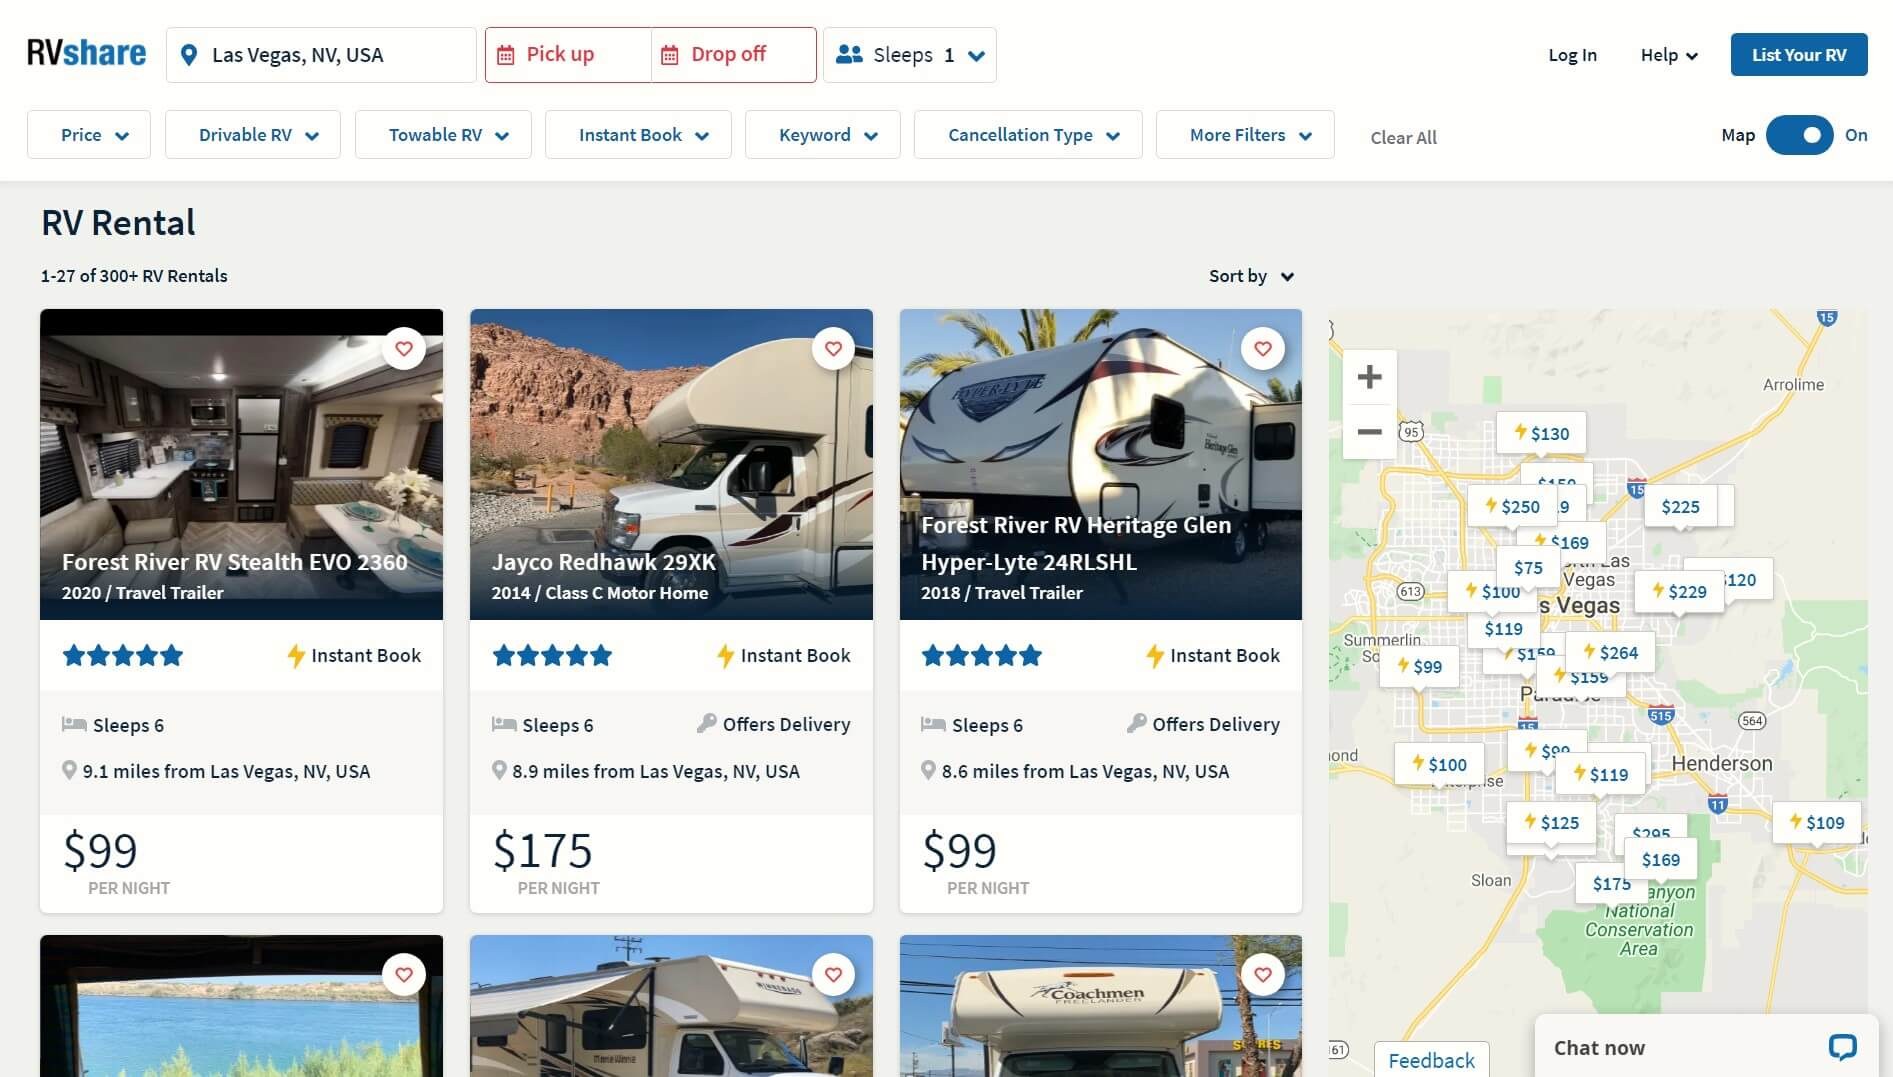 02-rv-las-vegas-rvshare-search-page